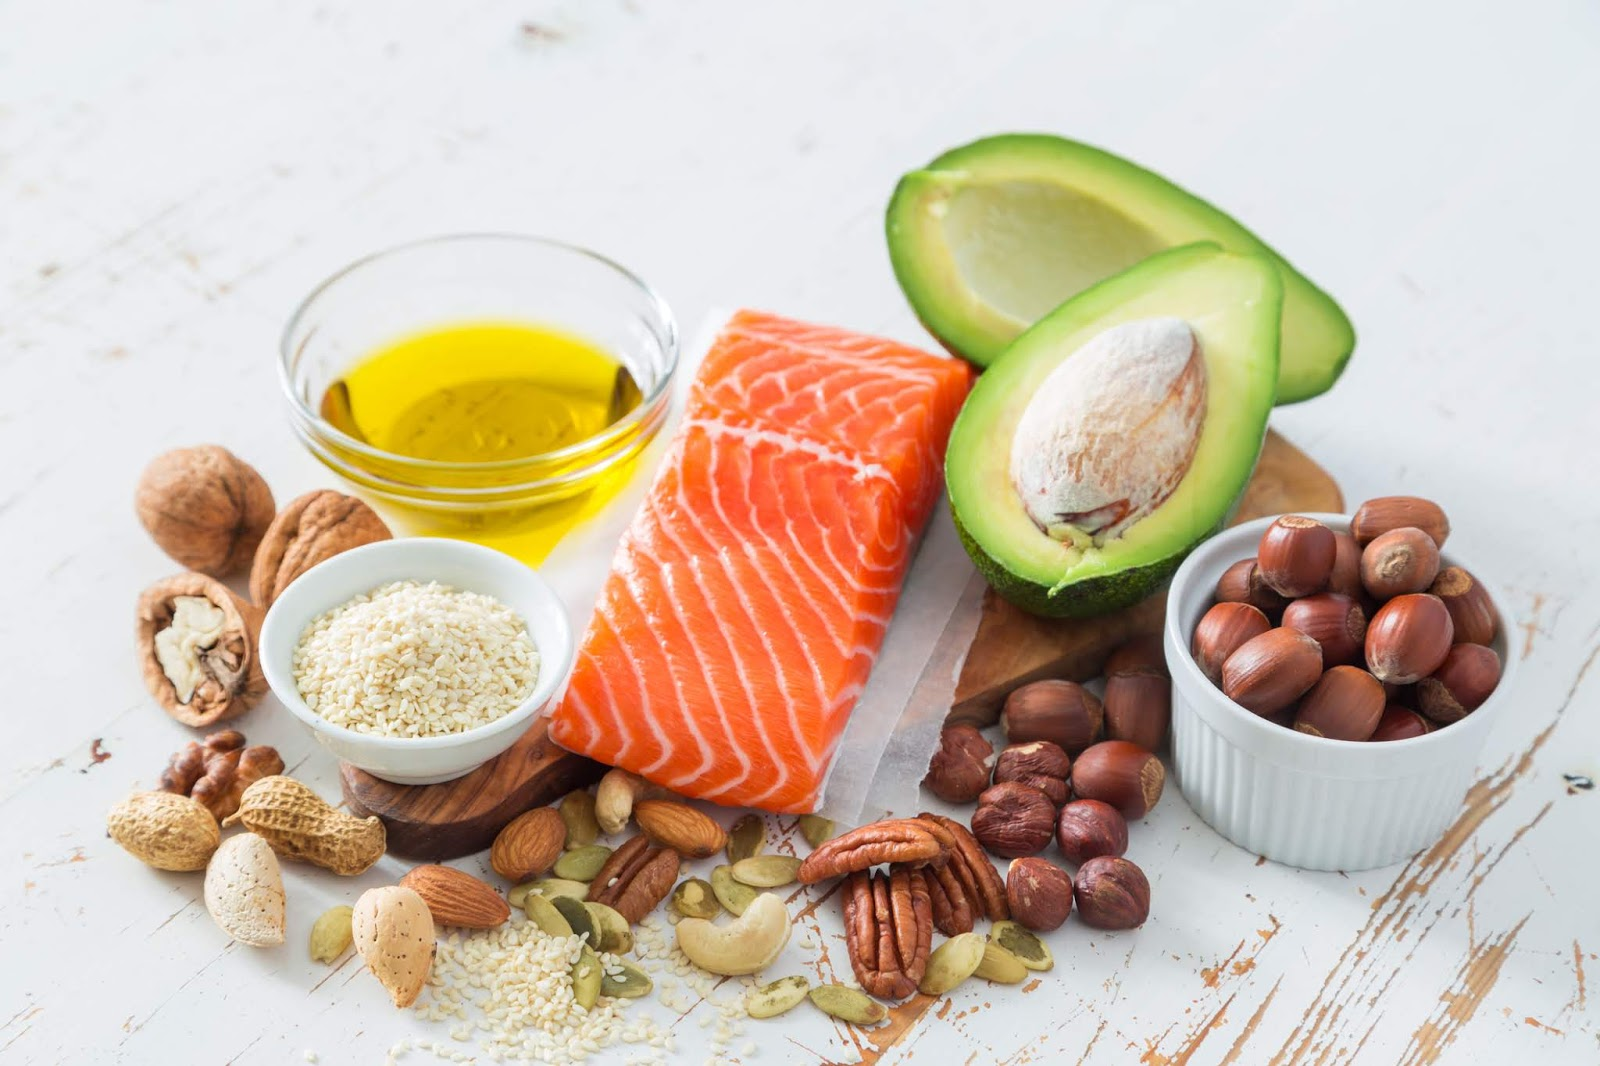 Weighty Matters: Yes, Current Evidence Still Suggests That Replacing  Saturated Fat With Unsaturated Fat Is Good For You